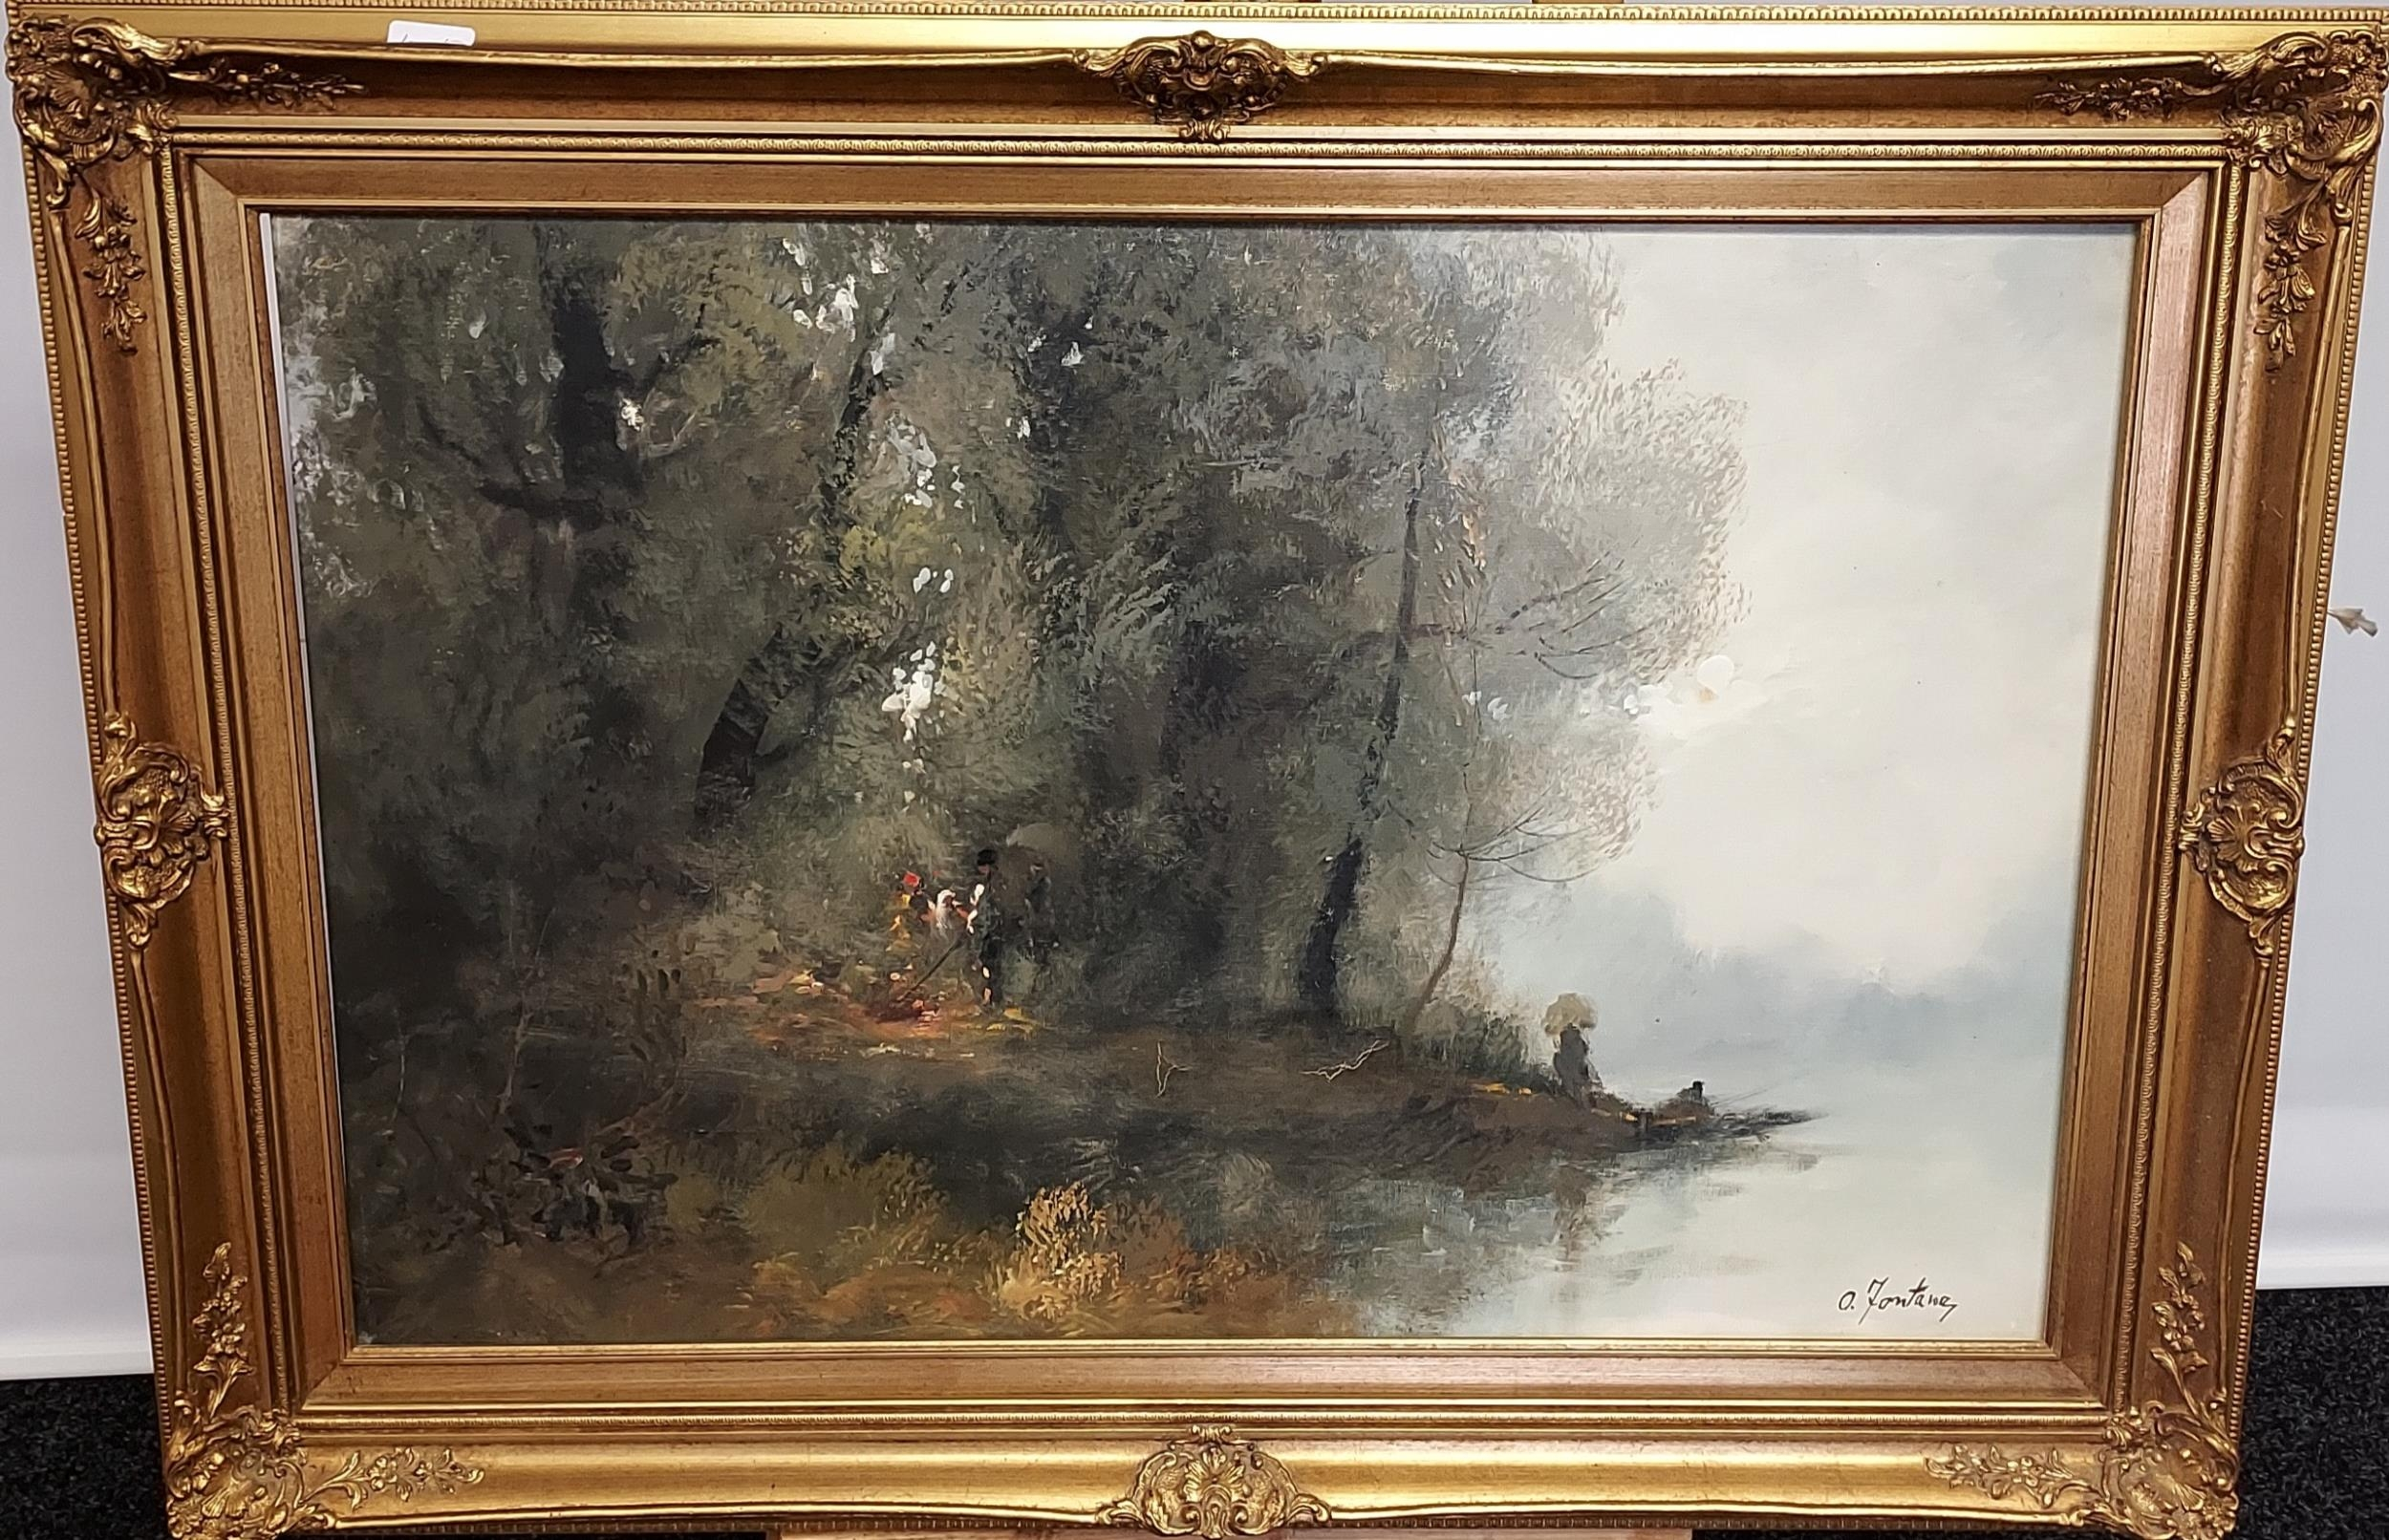 A Large oil painting on canvas depicting various figures fishing and by the fire. Signed A